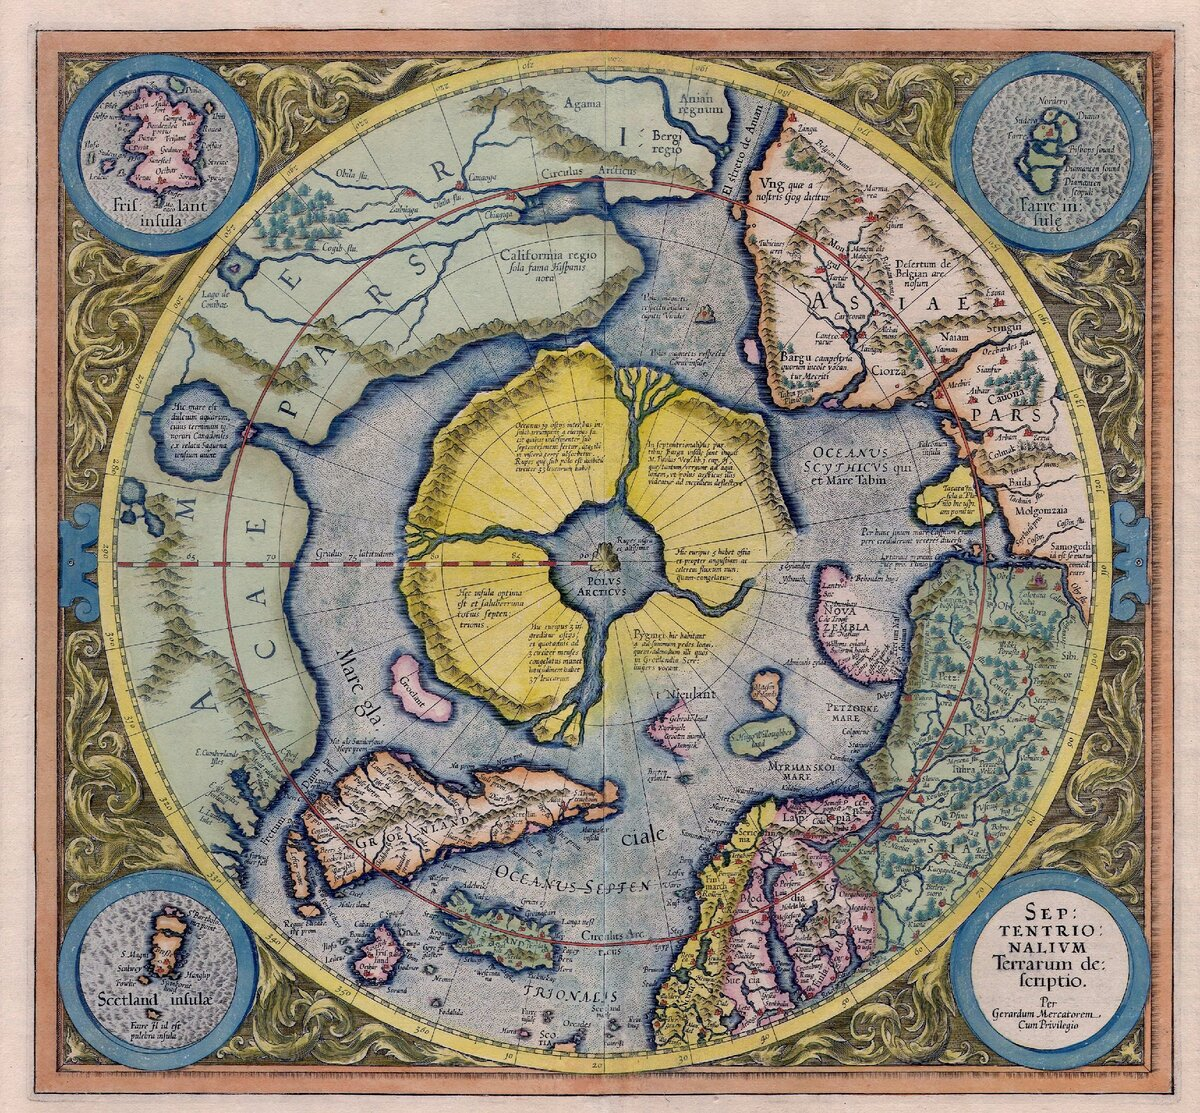 Автор: Gerardus Mercator, with addition of data from Willem Barentsz voyages - Helmink Antique Maps, Общественное достояние, https://commons.wikimedia.org/w/index.php?curid=2065045